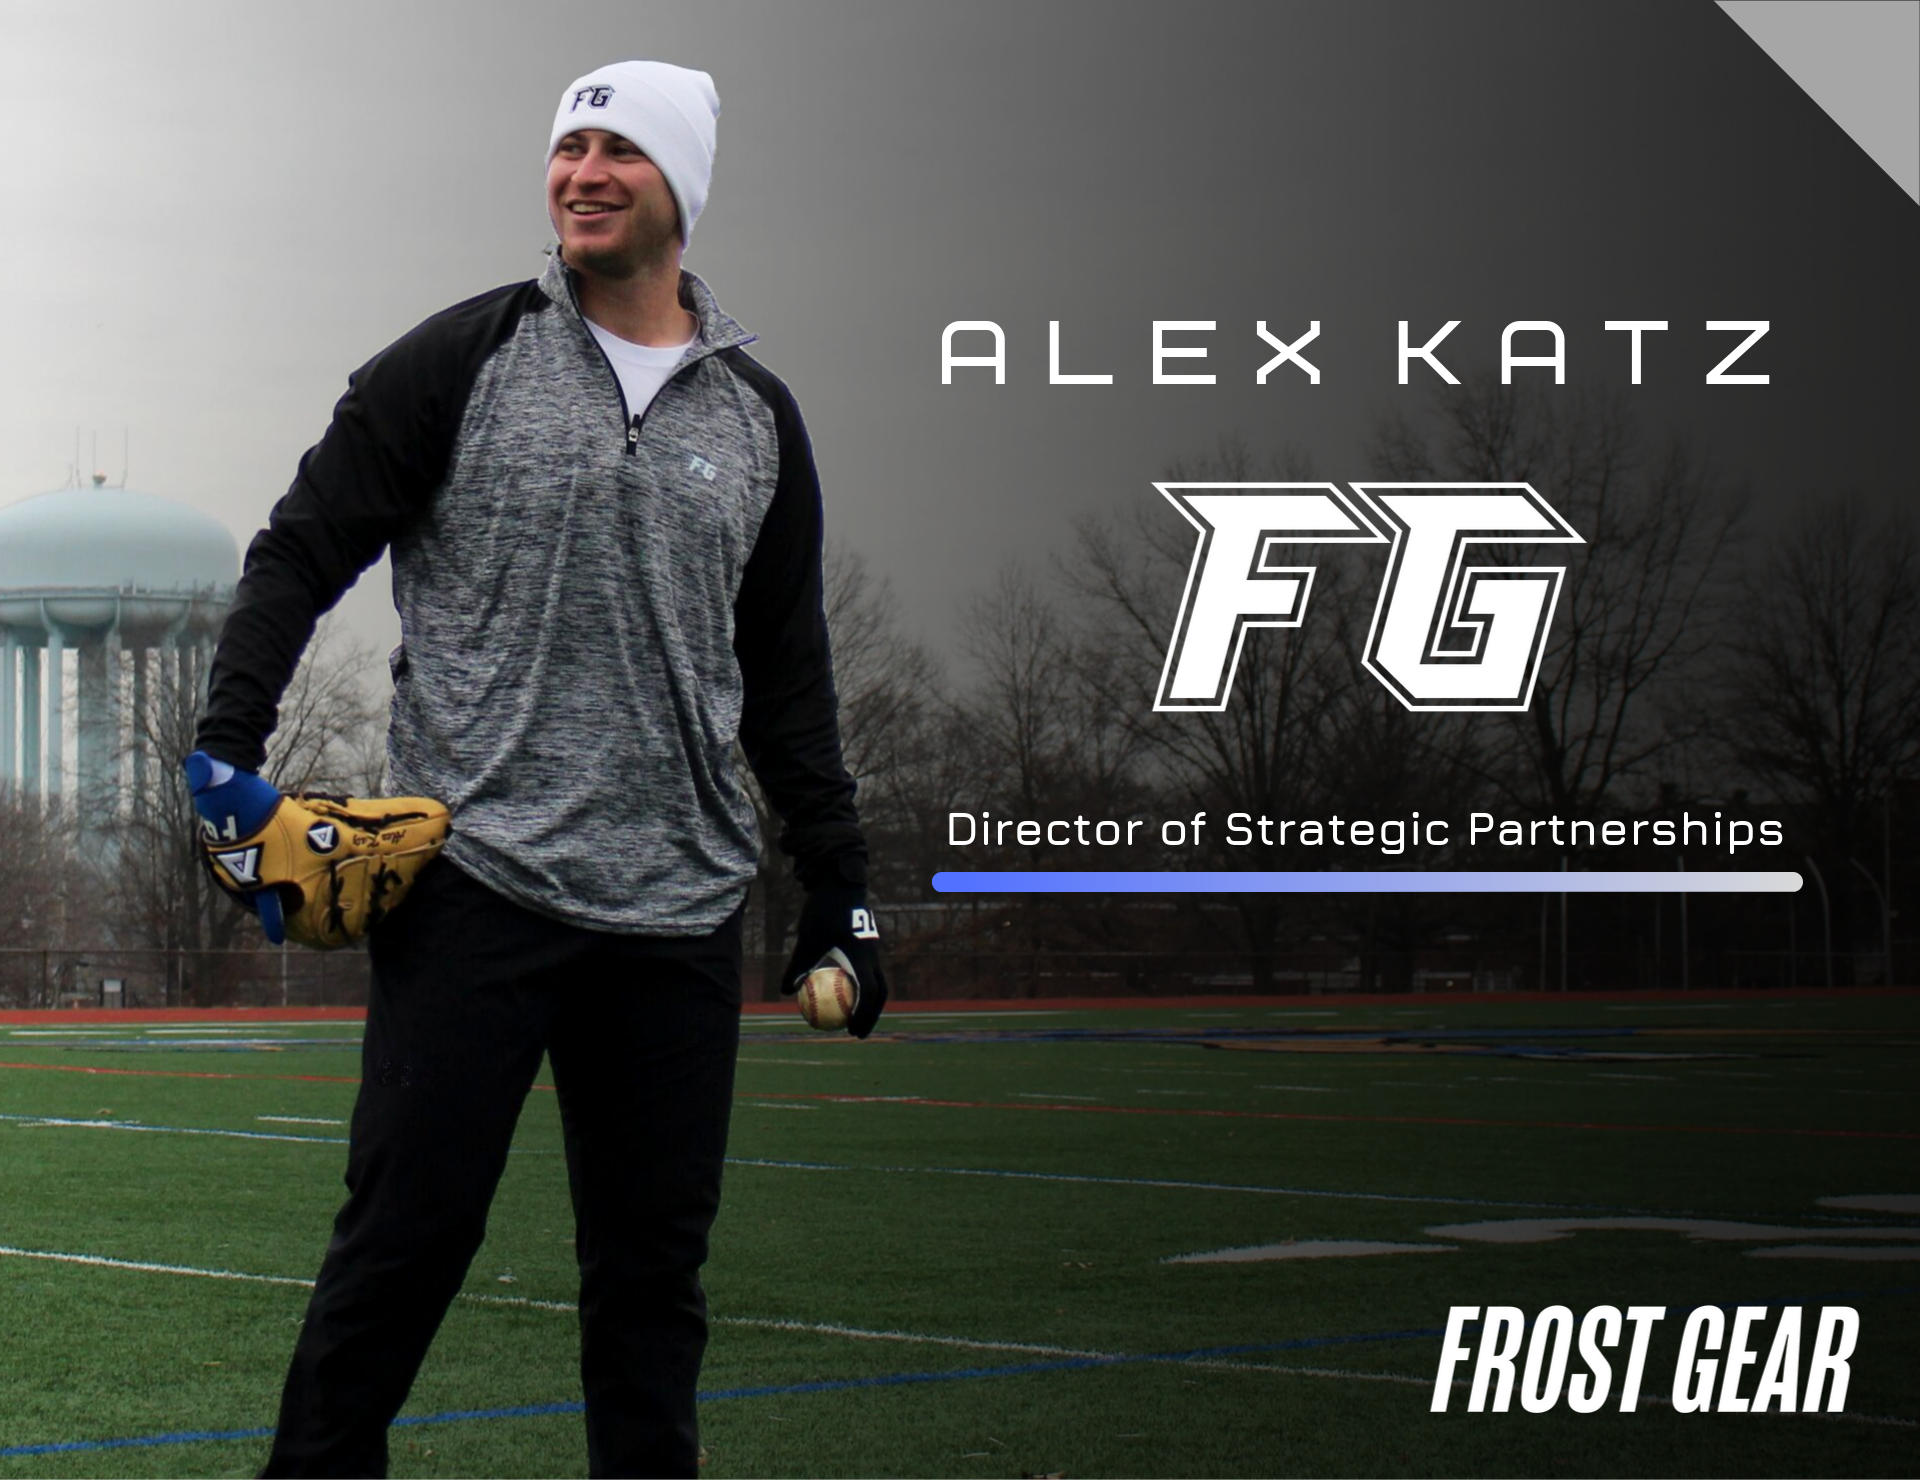 Pro Pitcher Alex Katz Joins Team Frost Gear